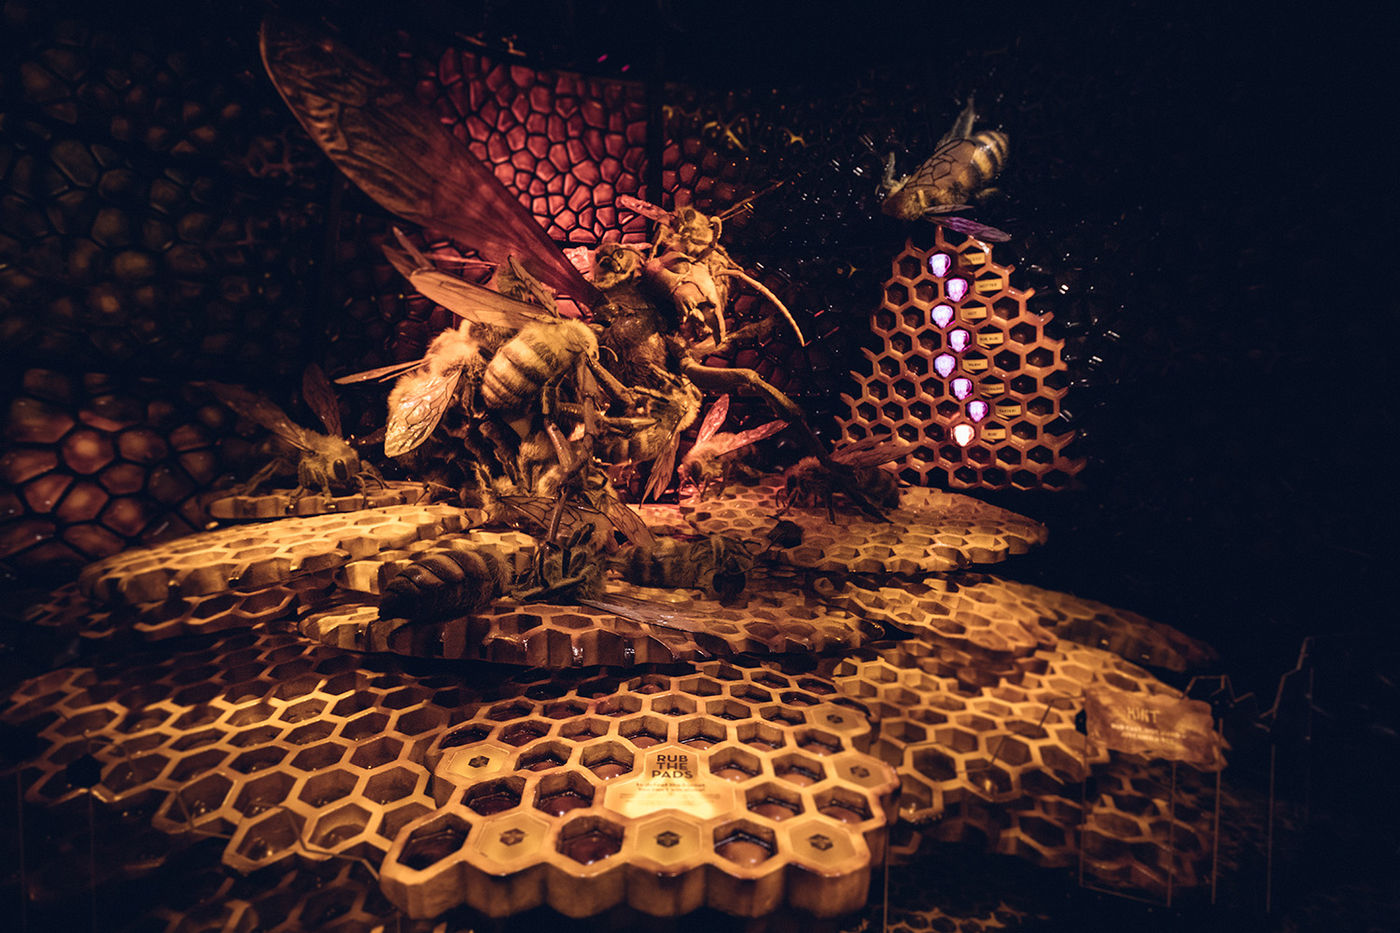 Oversized models of honeybees huddle together in the center of a honeycombed structure. The background lighting is pink.